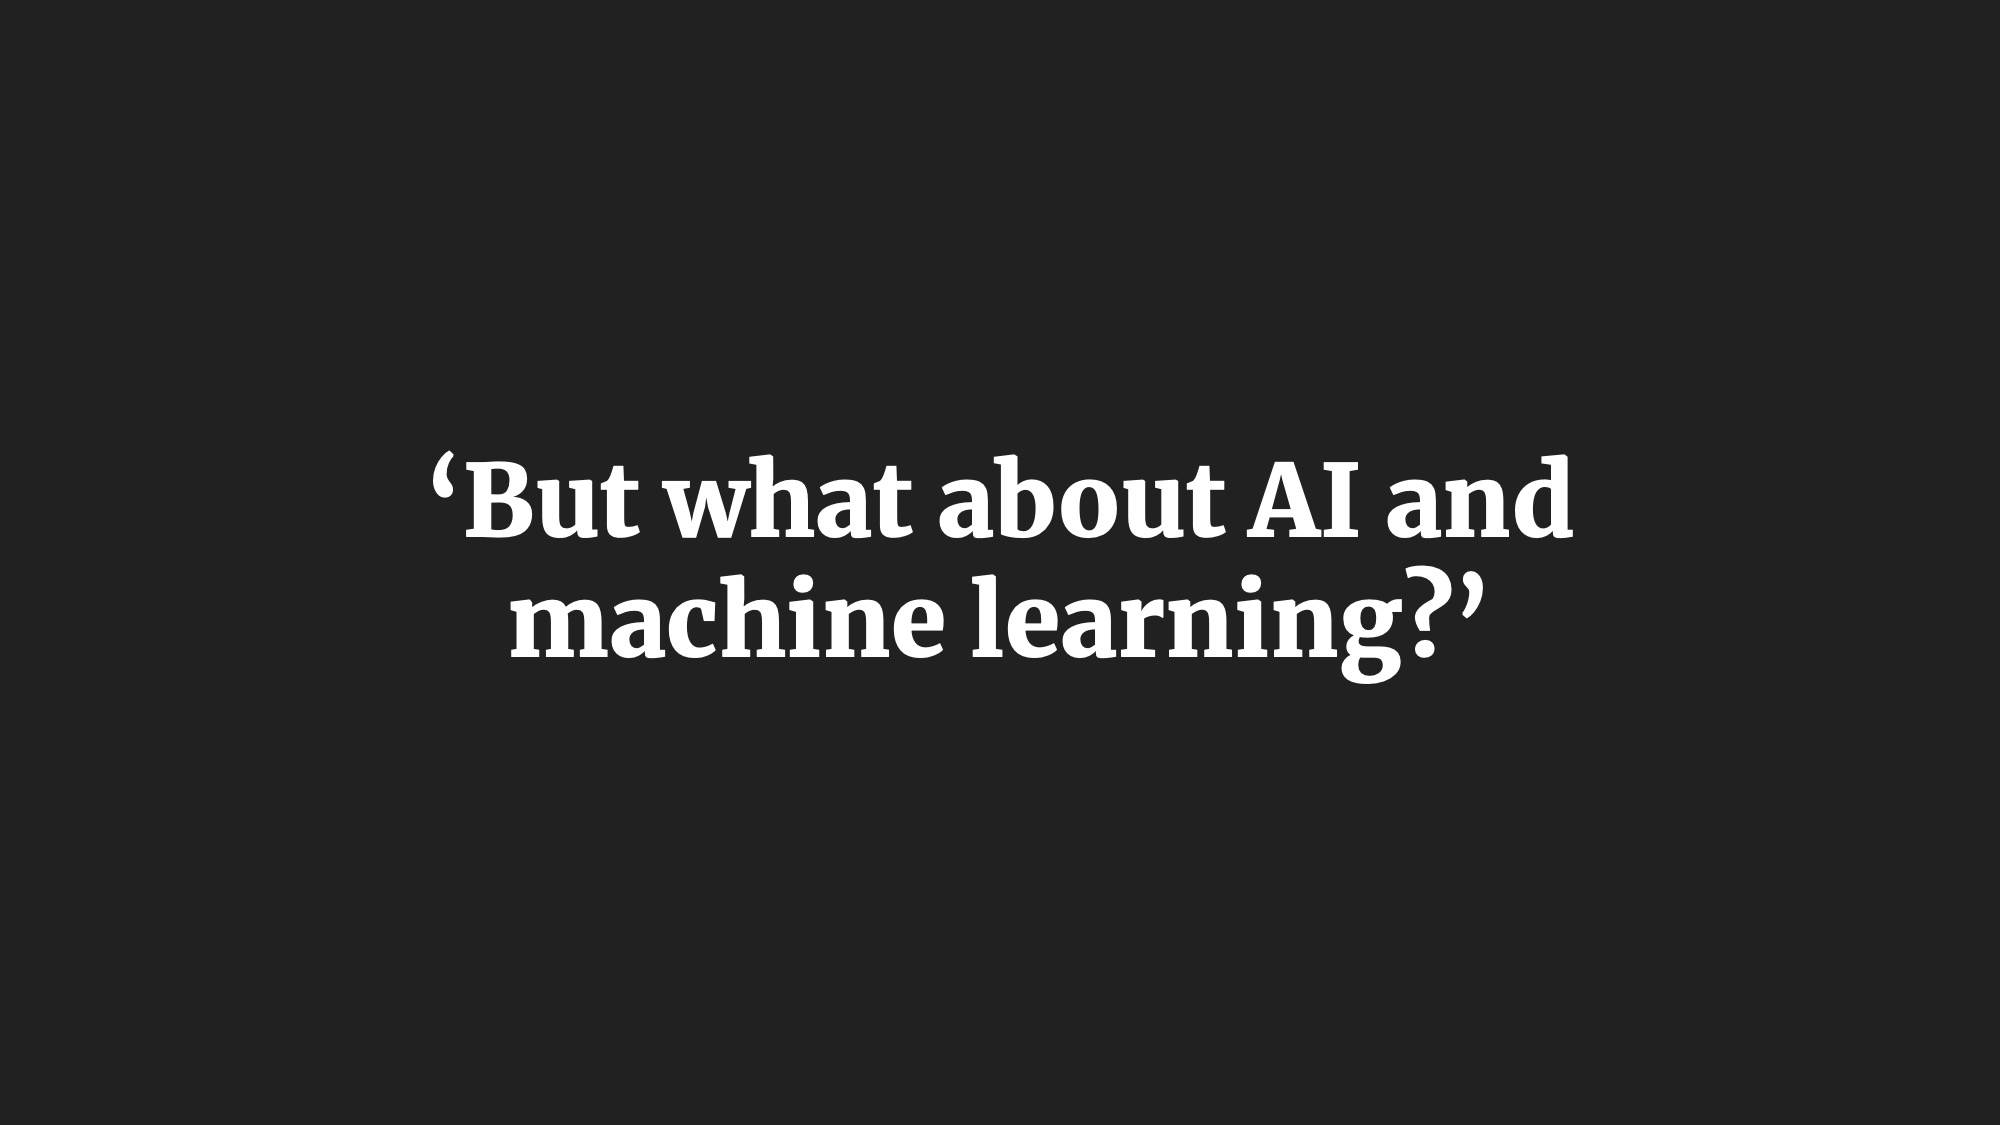 'But what about AI and machine learning?'